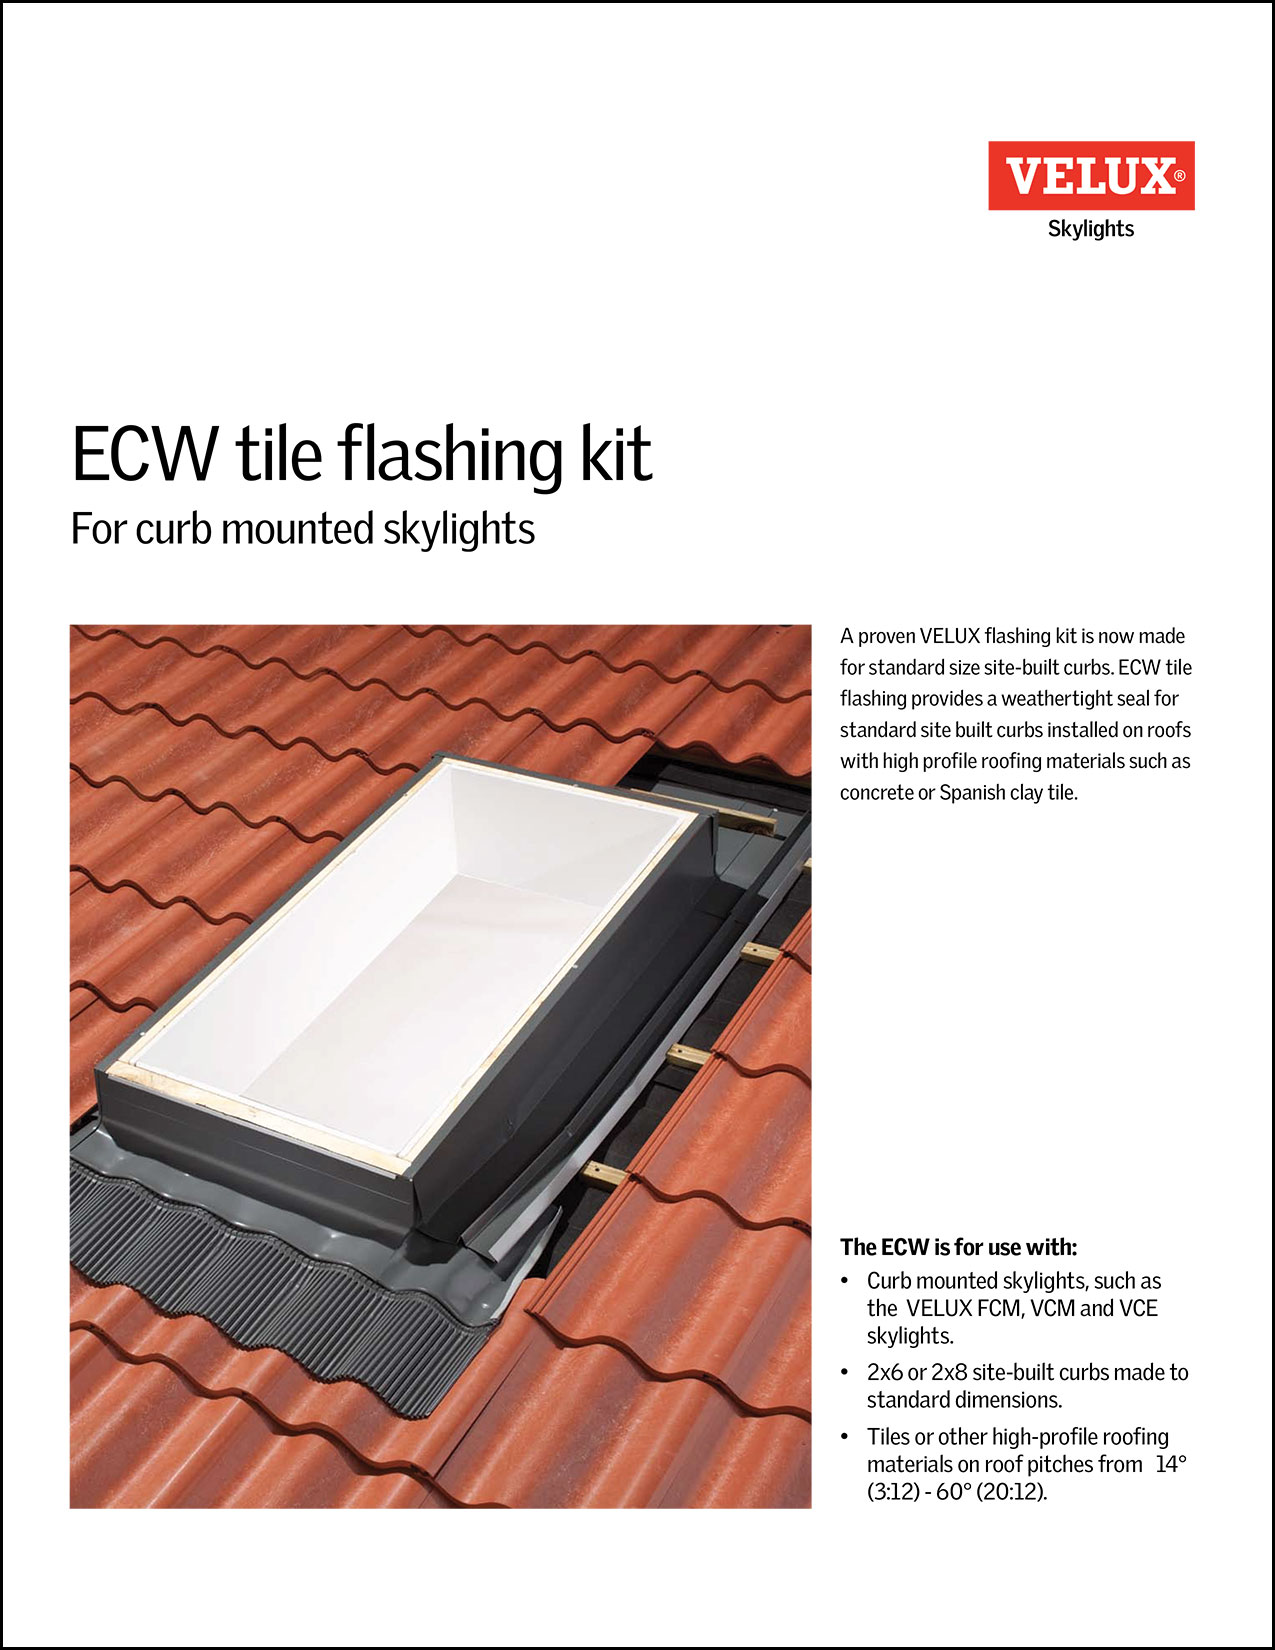 ECW Tile flashing kit brochure